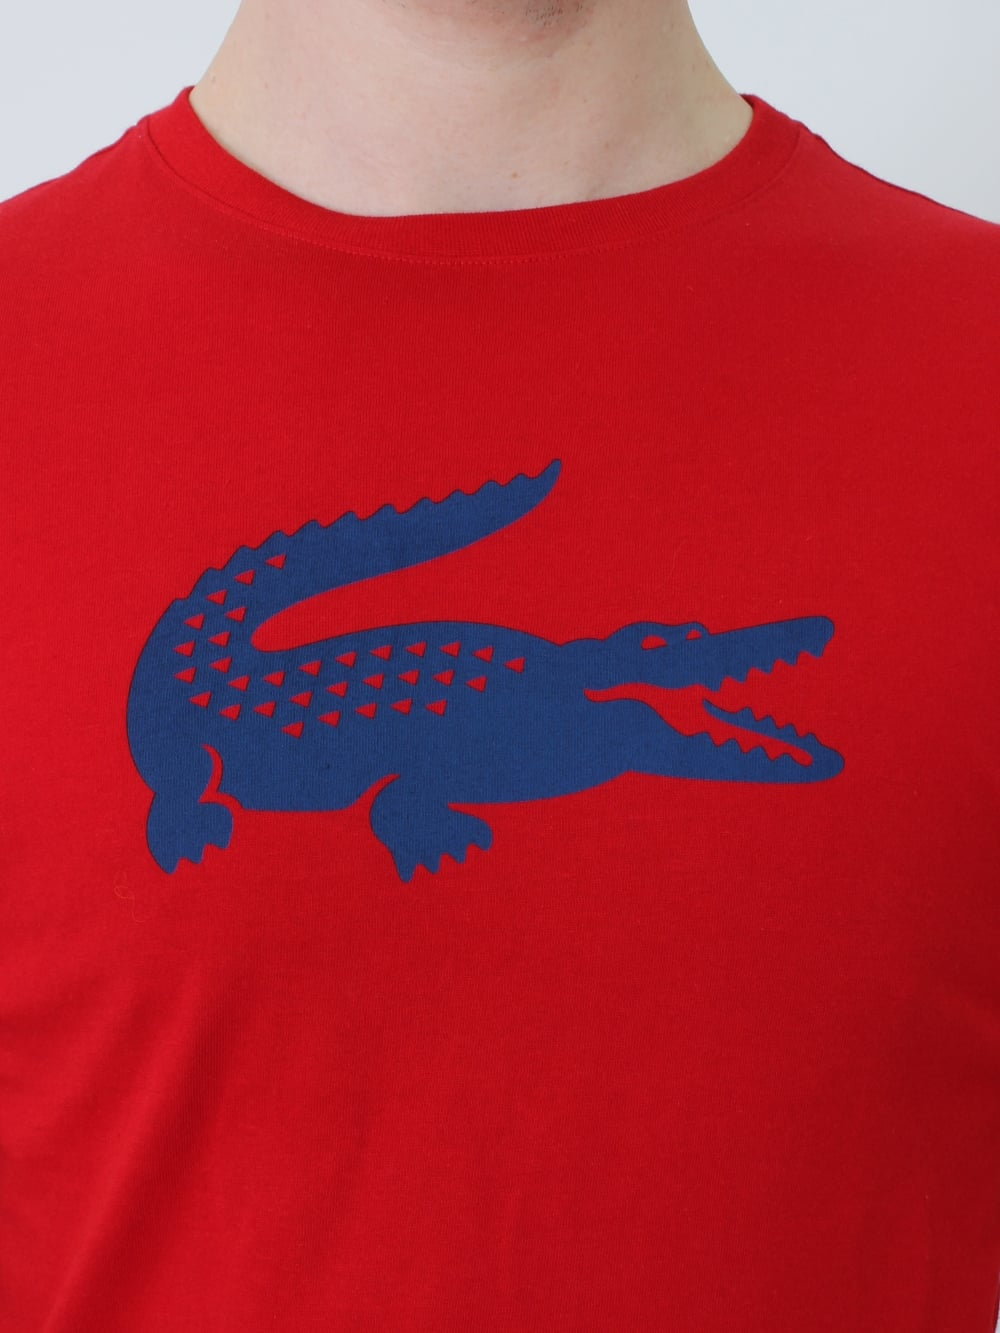 7d4c69cf4 Lacoste Sport Big Central Croc T. shirt in Red